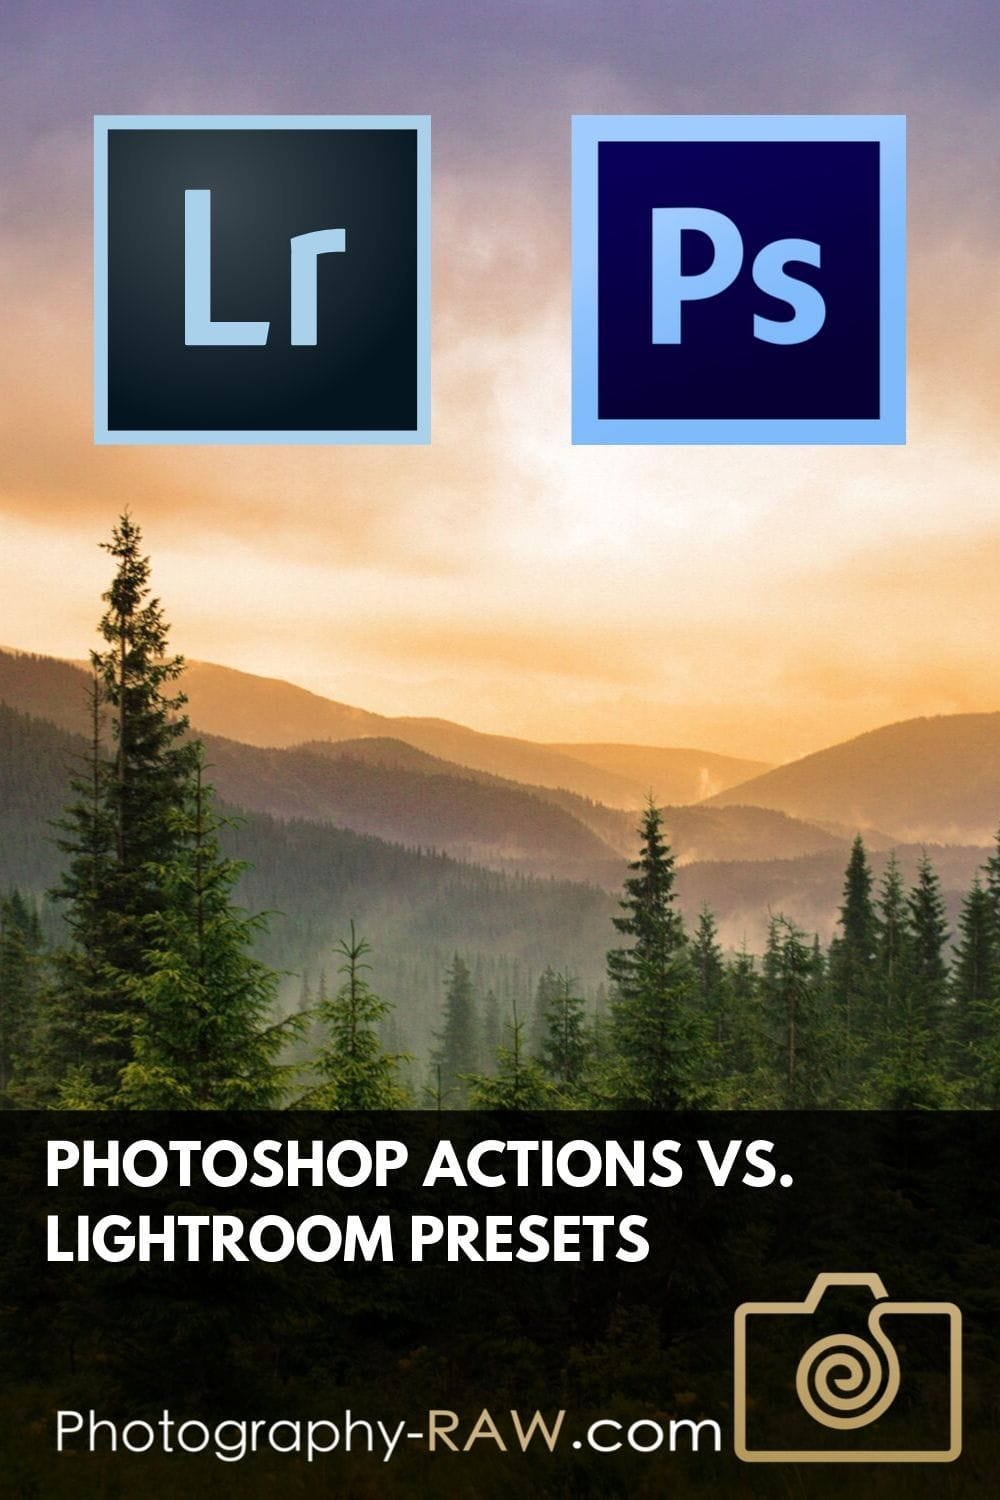 Photoshop Actions vs Lightroom Presets: Which to use?